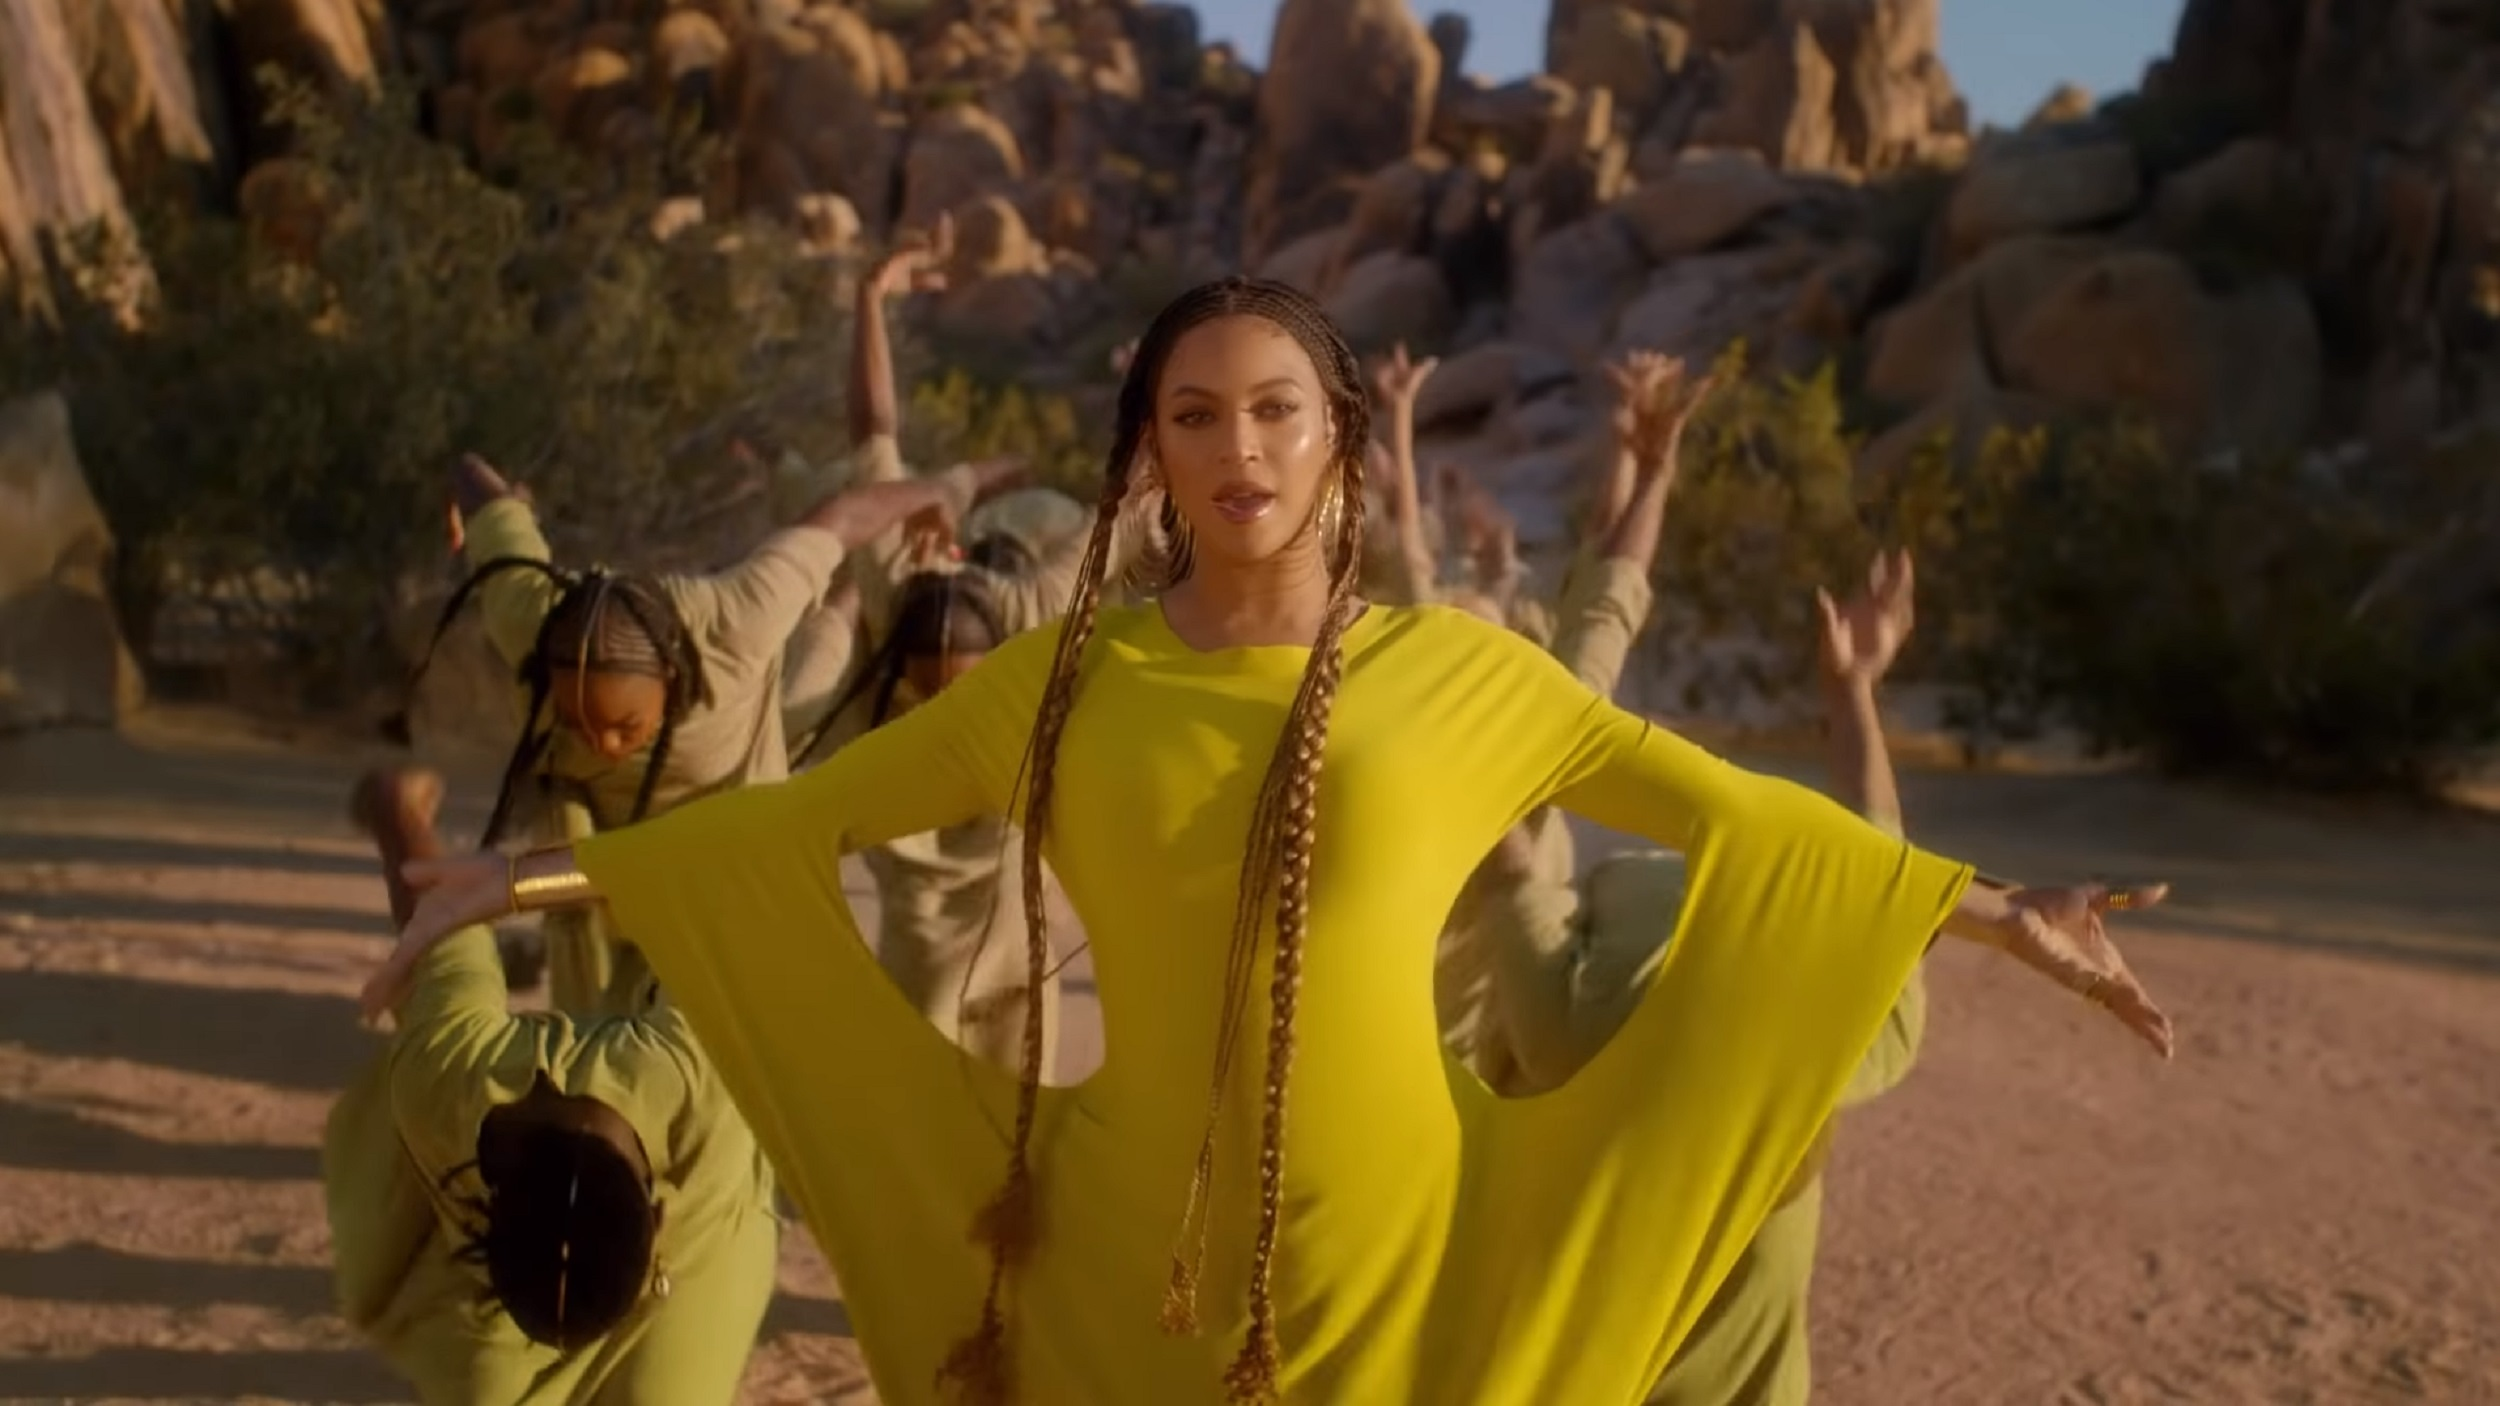 The stretchy yellow outfit